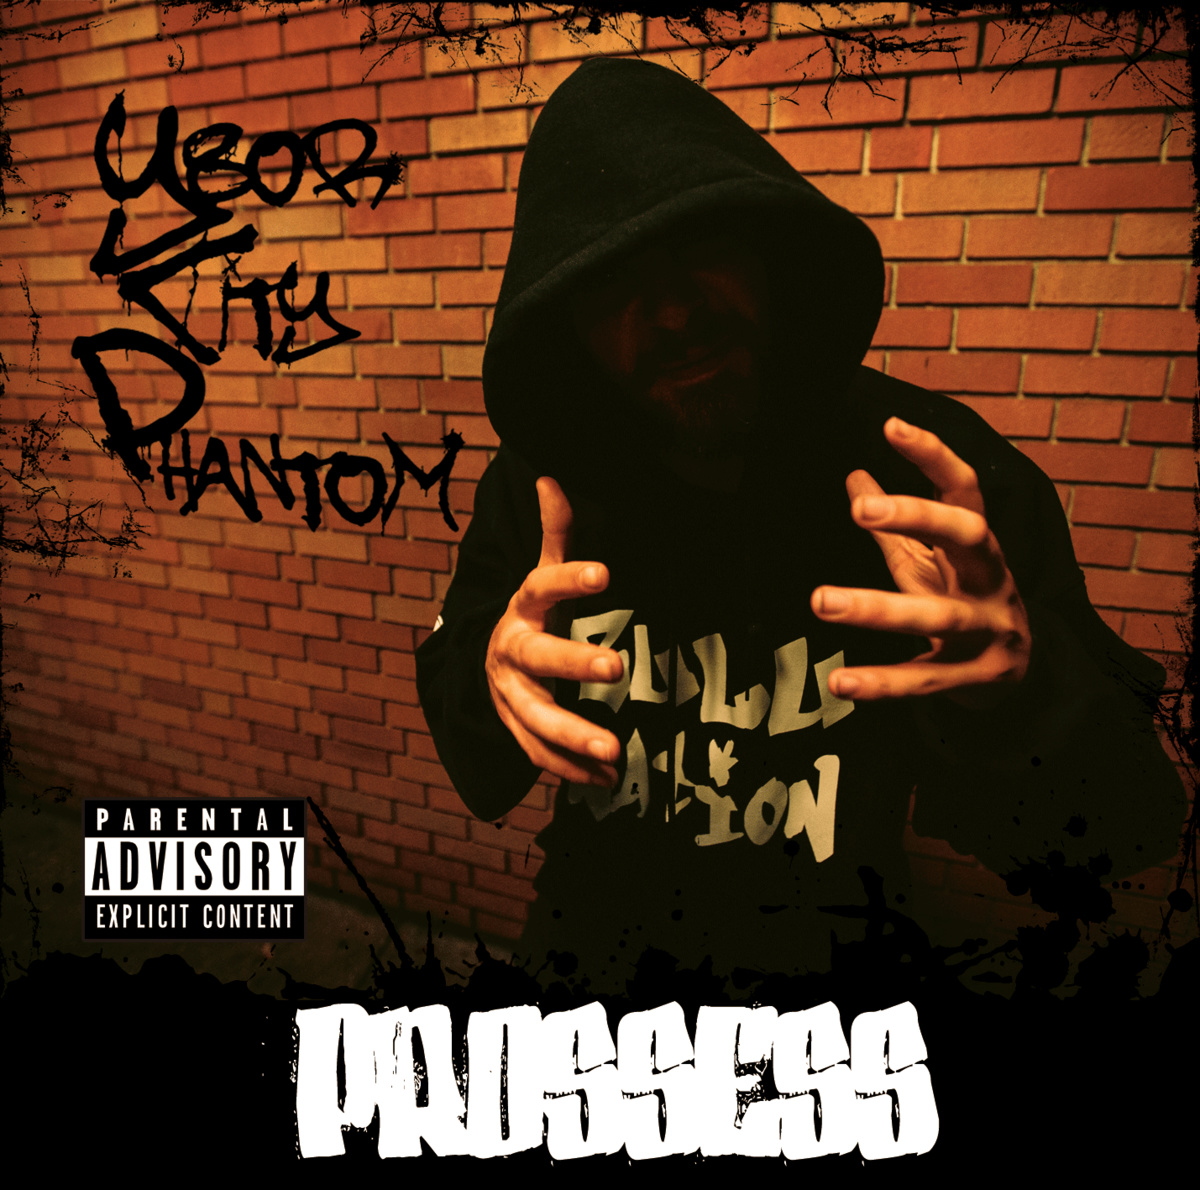 Prossess_presenta_ybor_city_phantom